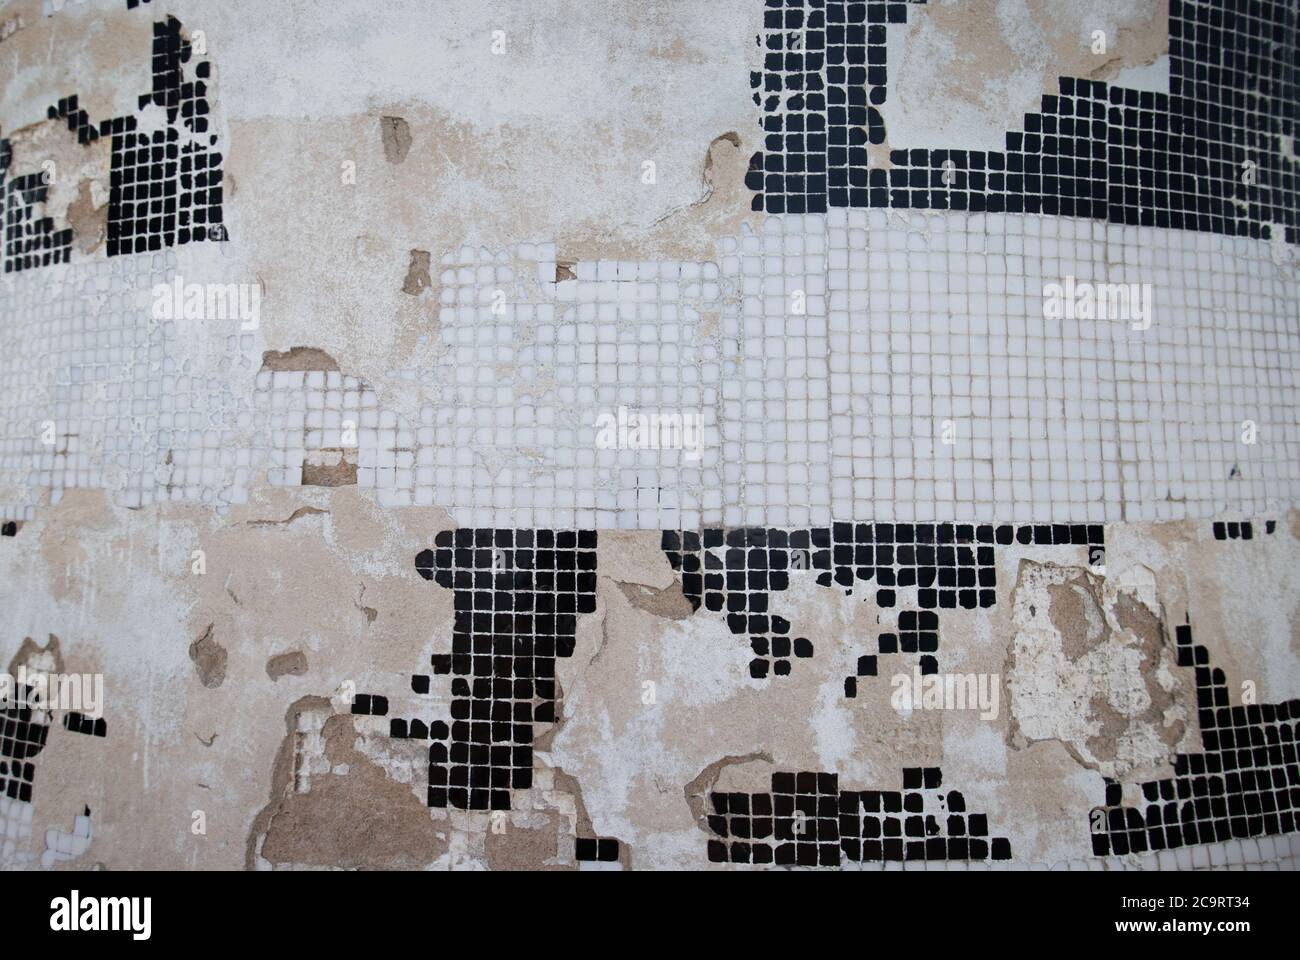 artistic ceramic mosaic in grayscale Stock Photo